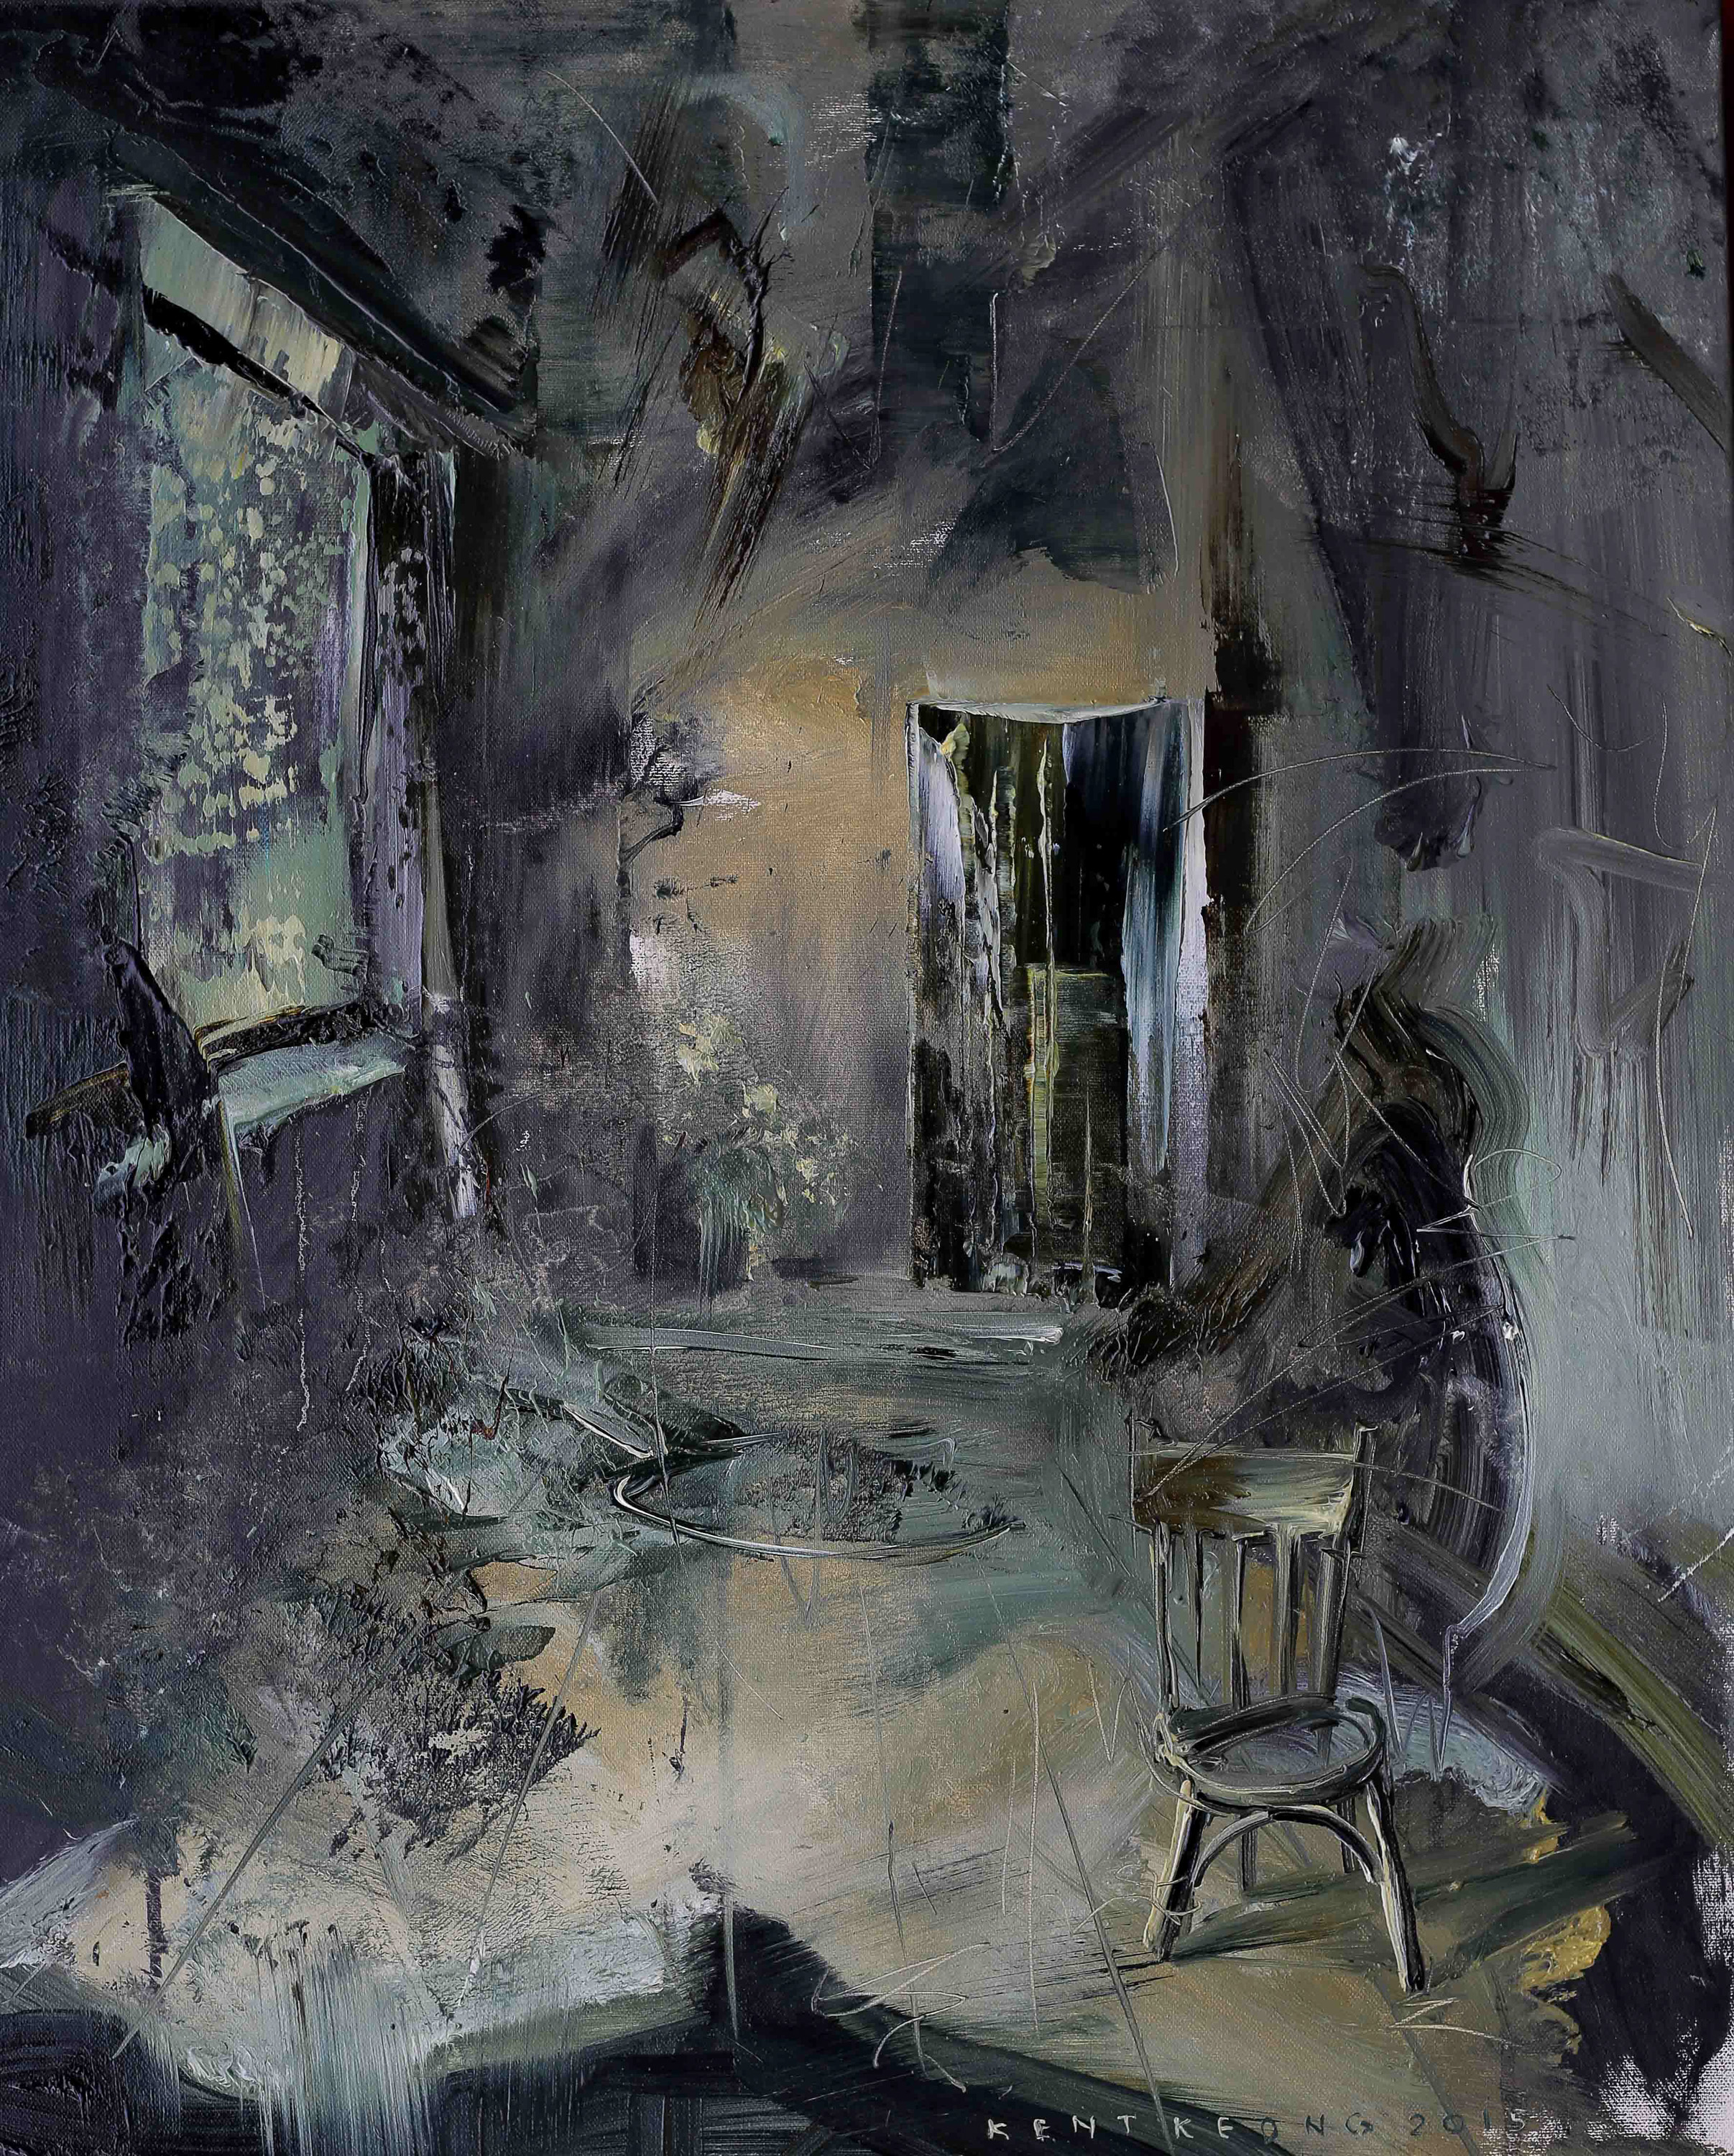 In The Room |房子裏面, 2015, 65 x 53 cm,